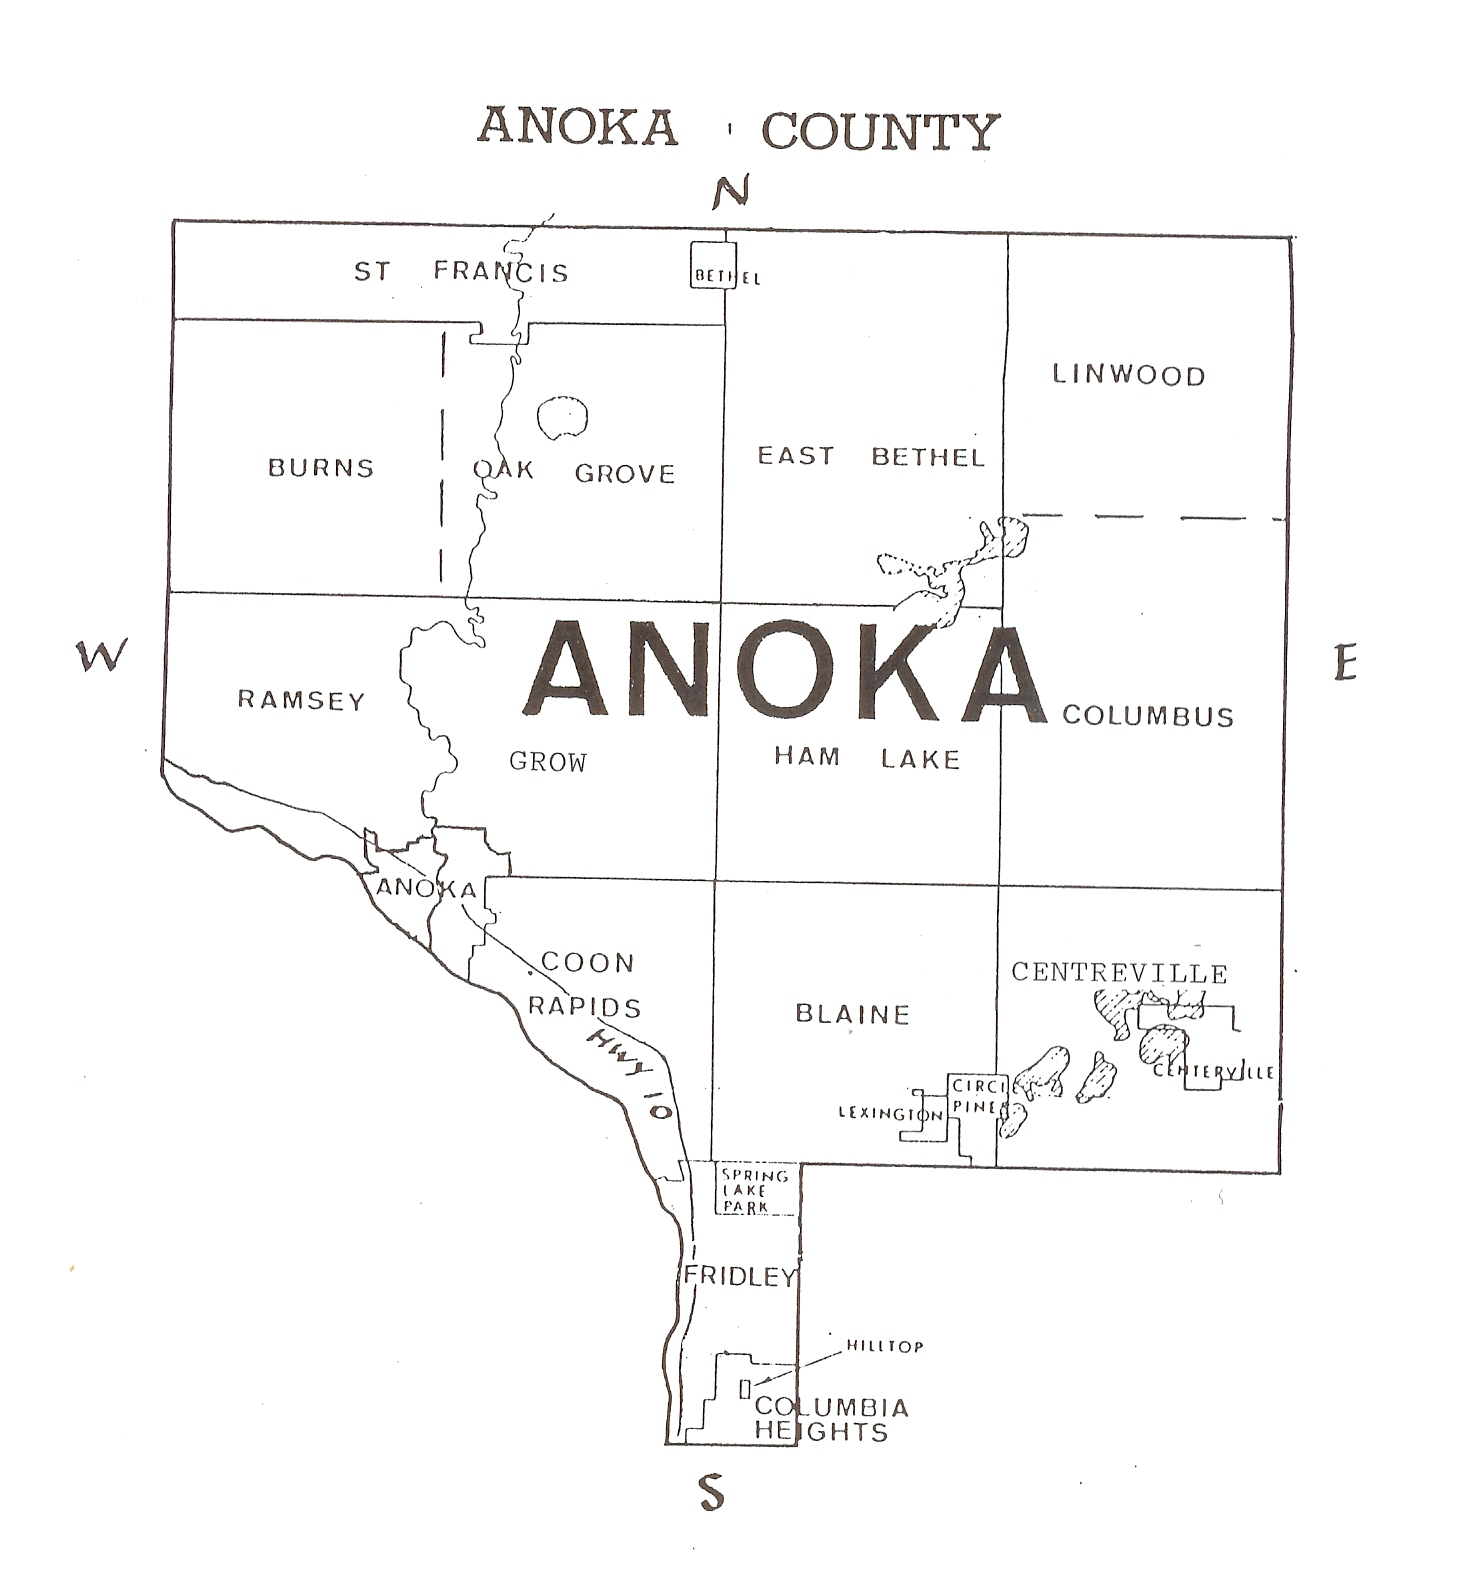 anoka county dating Anoka county newspaper - visit the most popular and simplest online dating site to flirt, chart, or date with interesting people online, sign up for free.